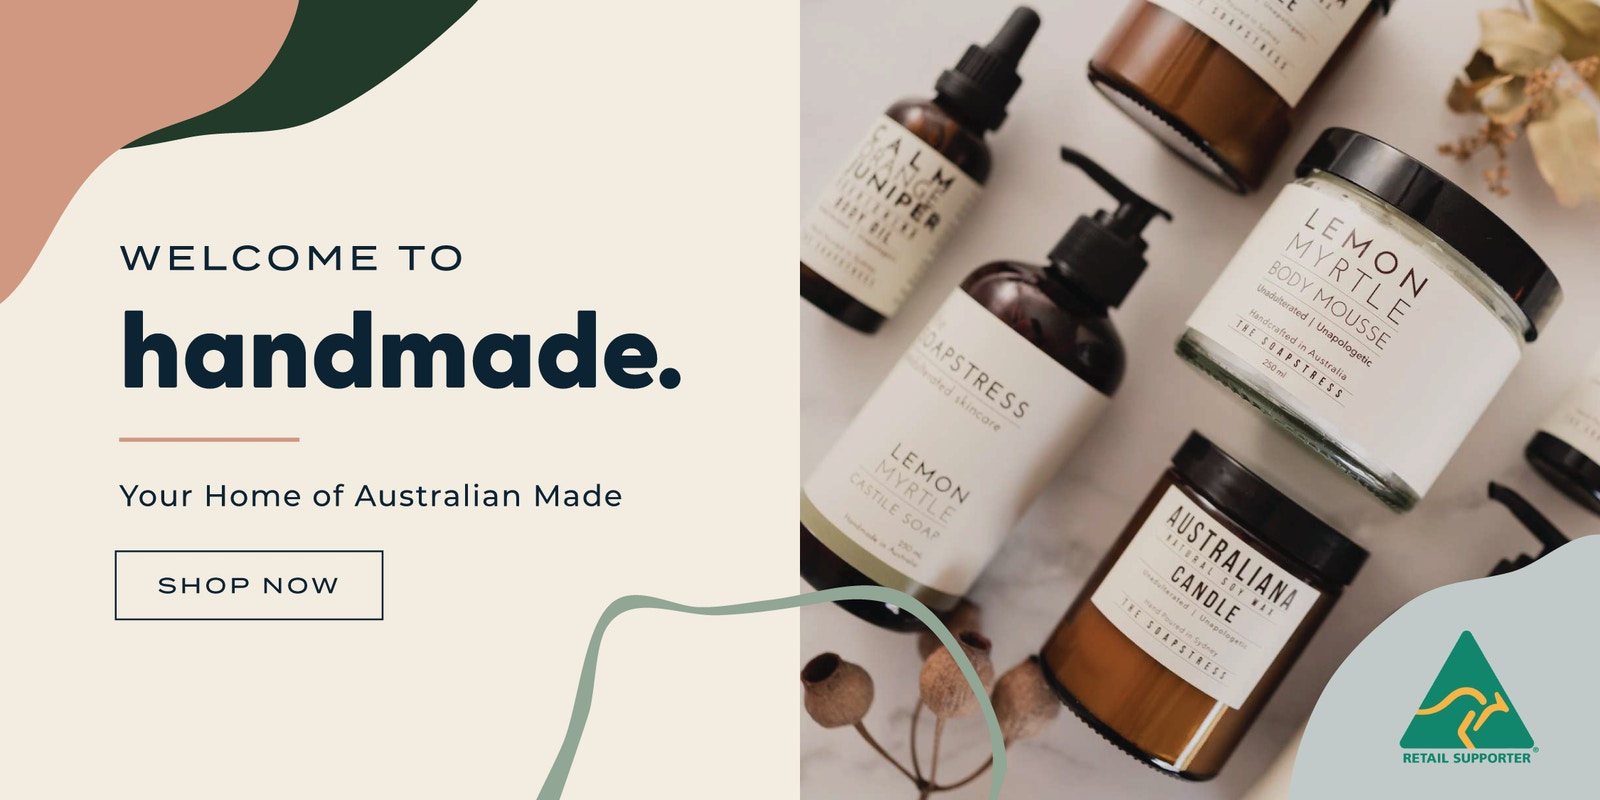 Welcome to Handmade - Your Home of Australian Made